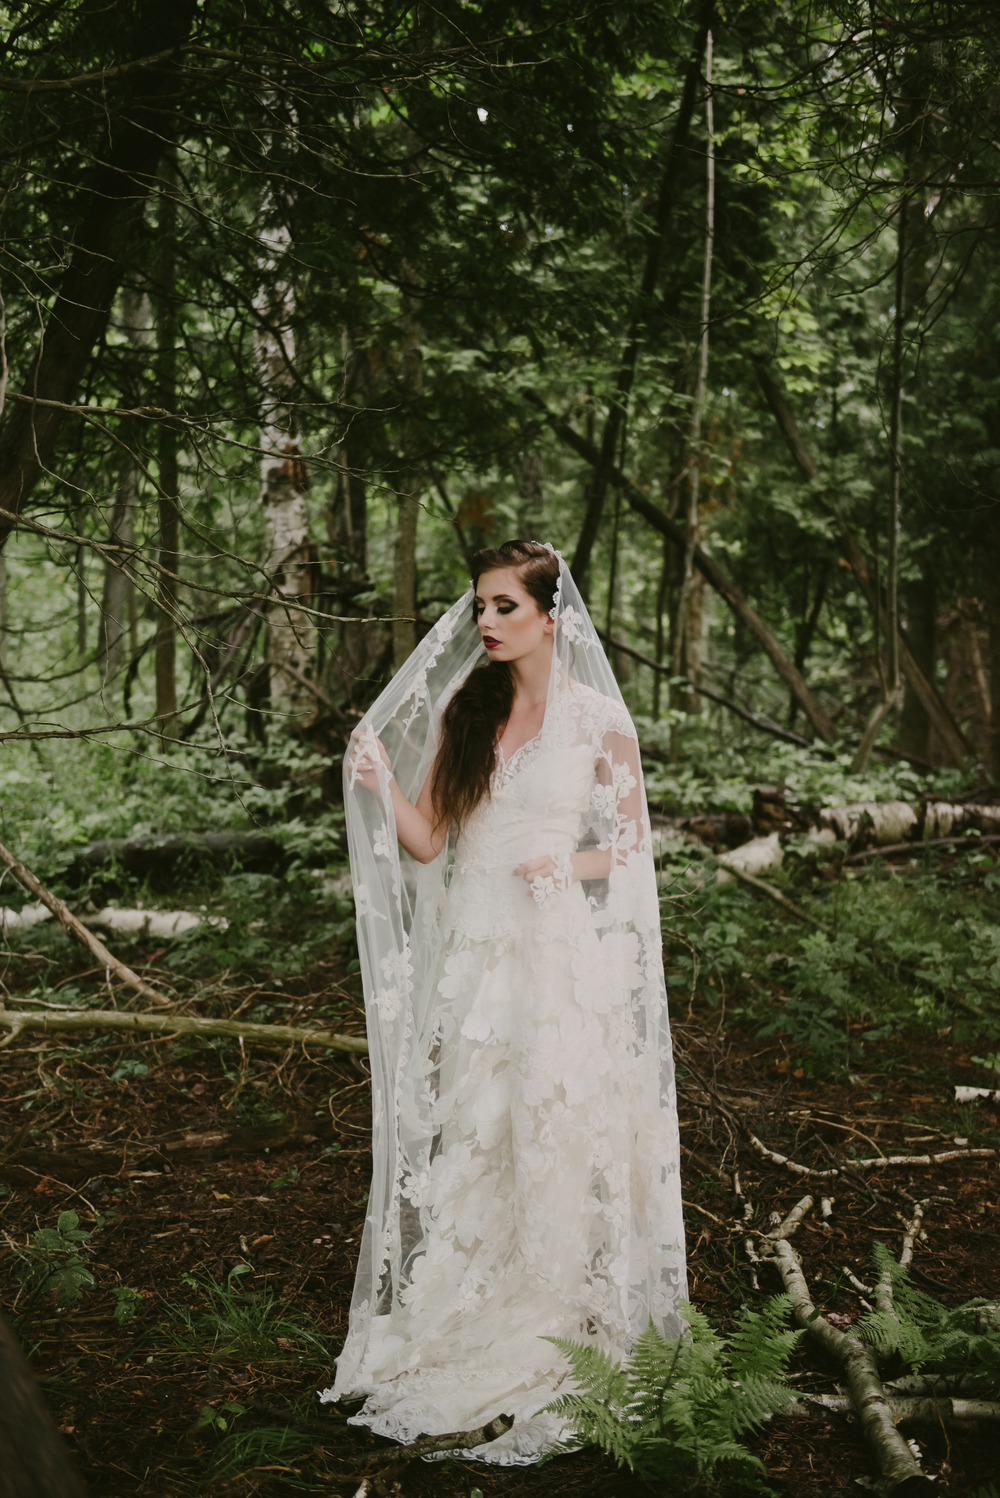 destinydawnphotography|woodsy-102.jpg